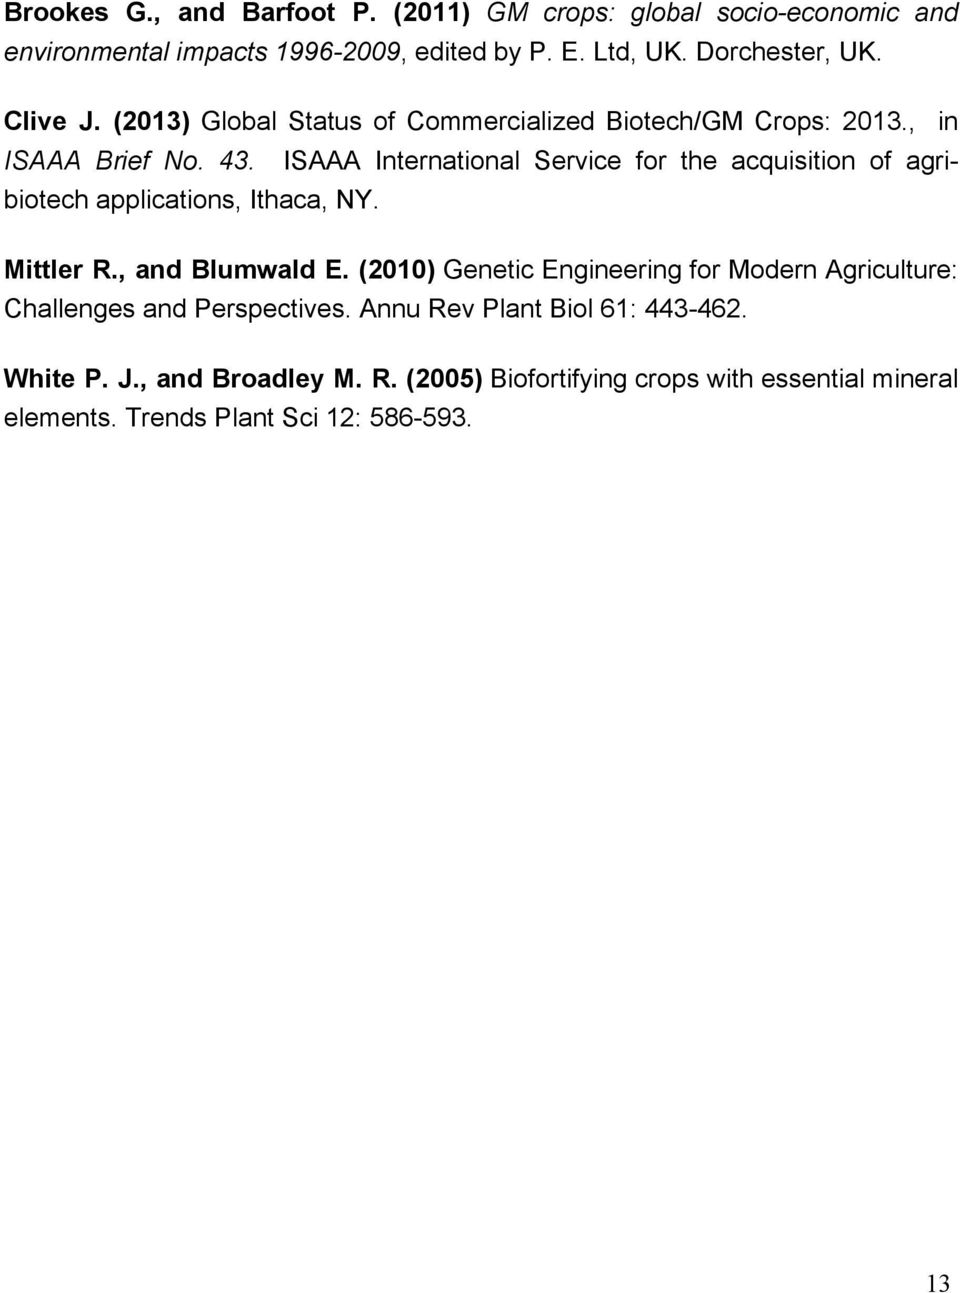 ISAAA International Service for the acquisition of agribiotech applications, Ithaca, NY. Mittler R., and Blumwald E.